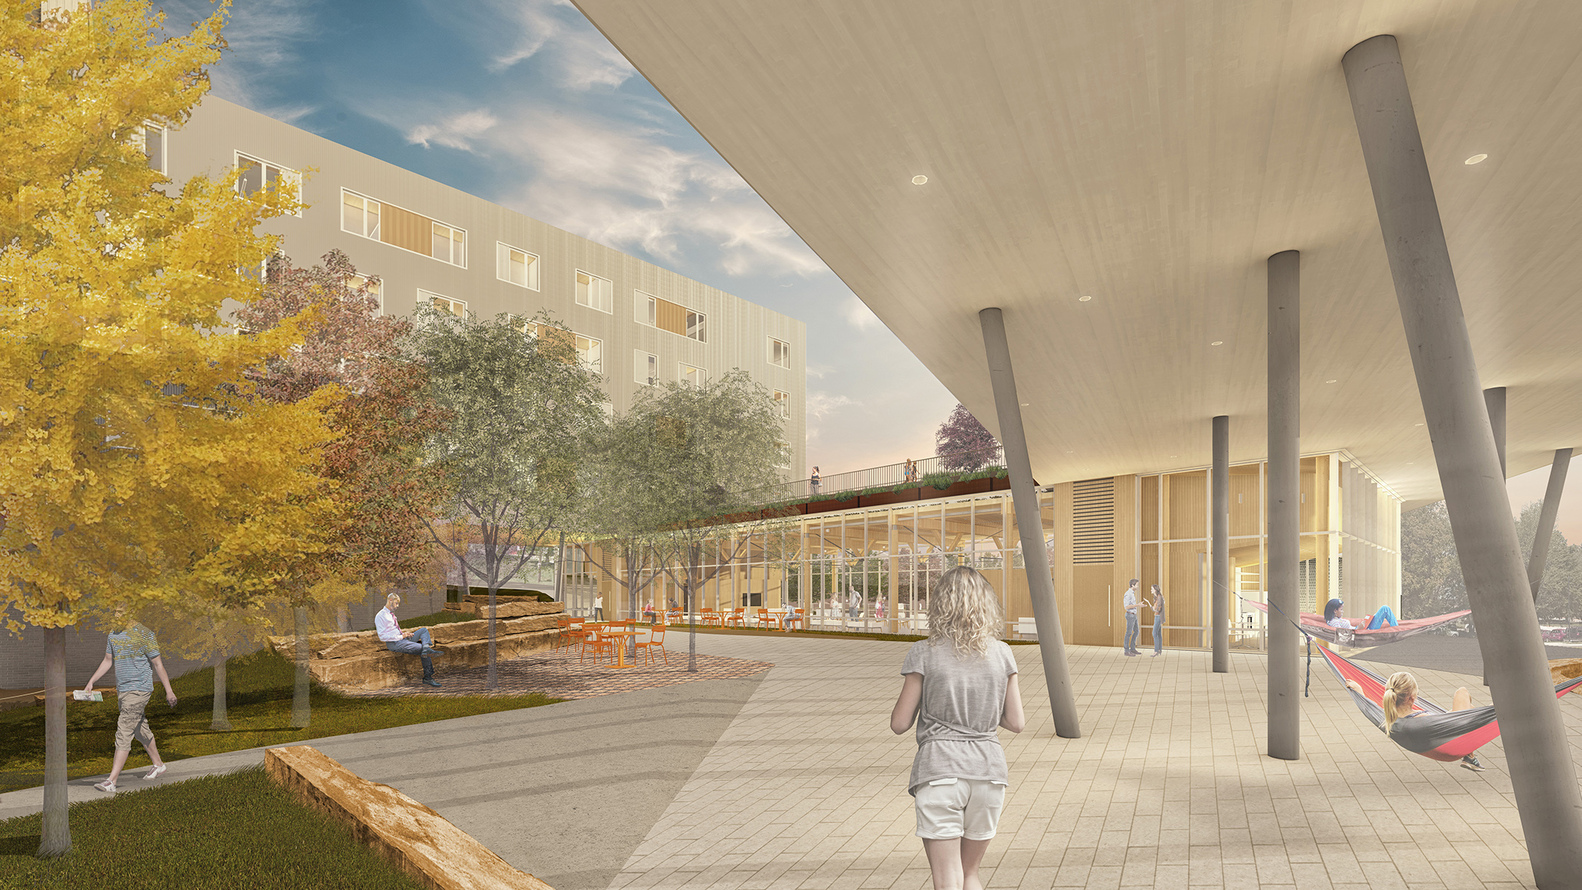 cross-laminated timber university of arkansas stadium drive residence halls nabholz construction college dorms northwest arkansas